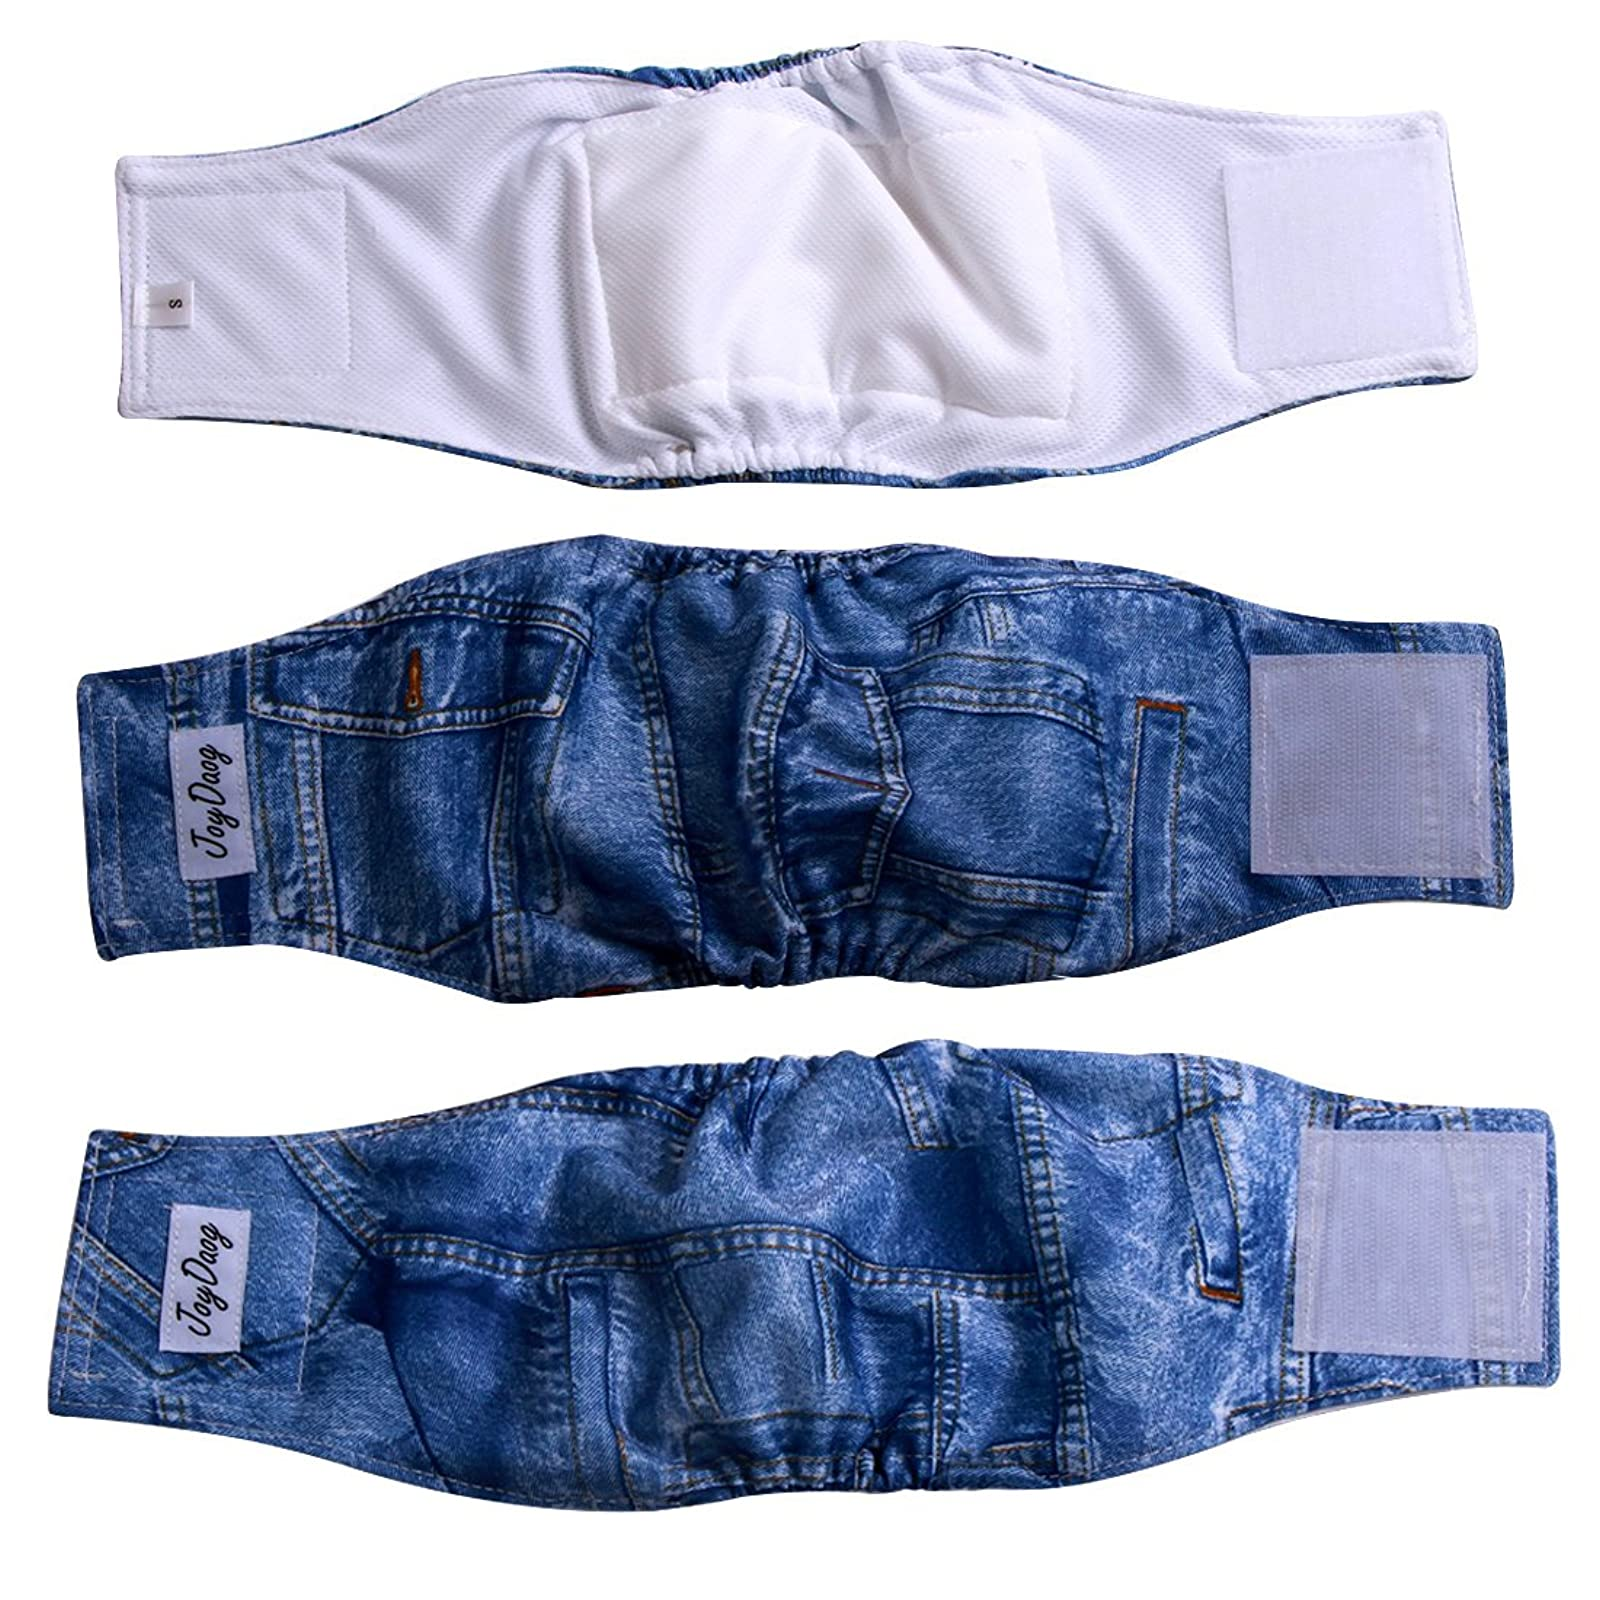 JoyDaog Jean Belly BandsSmall Dog Diapers Male - 7